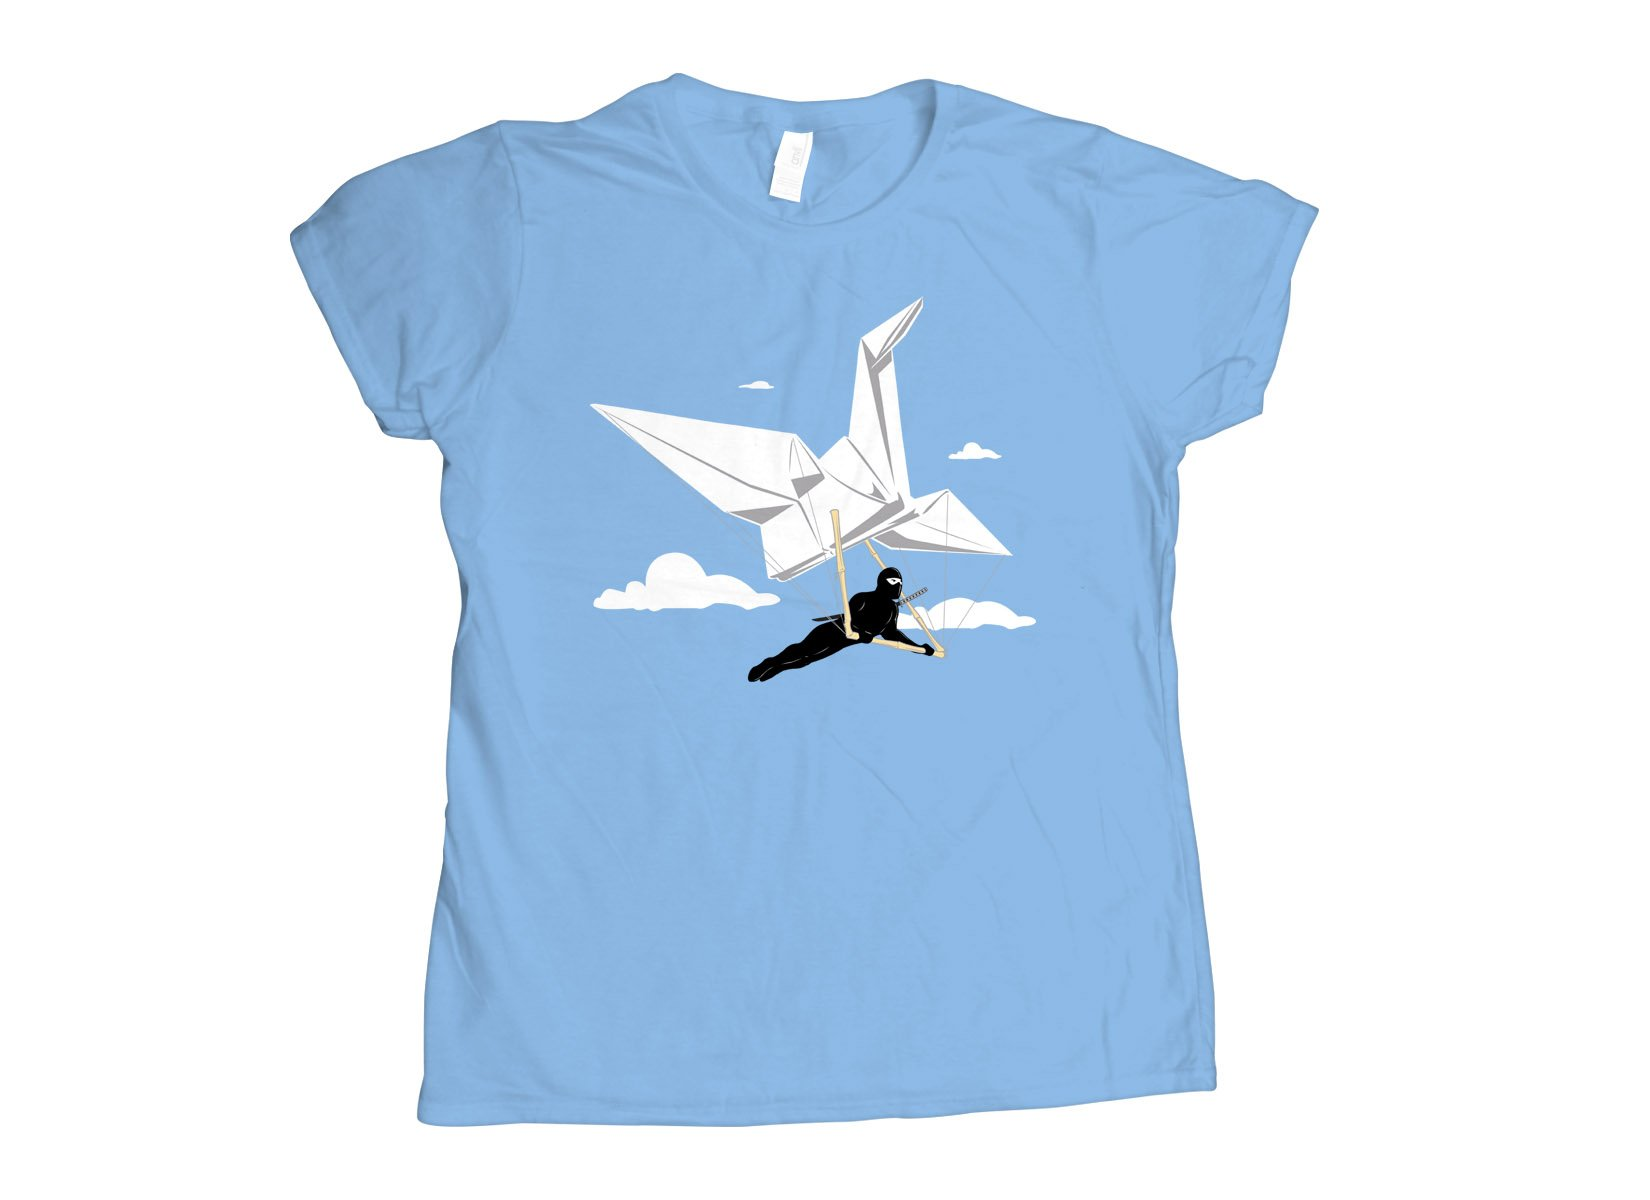 Ninja Glider on Womens T-Shirt